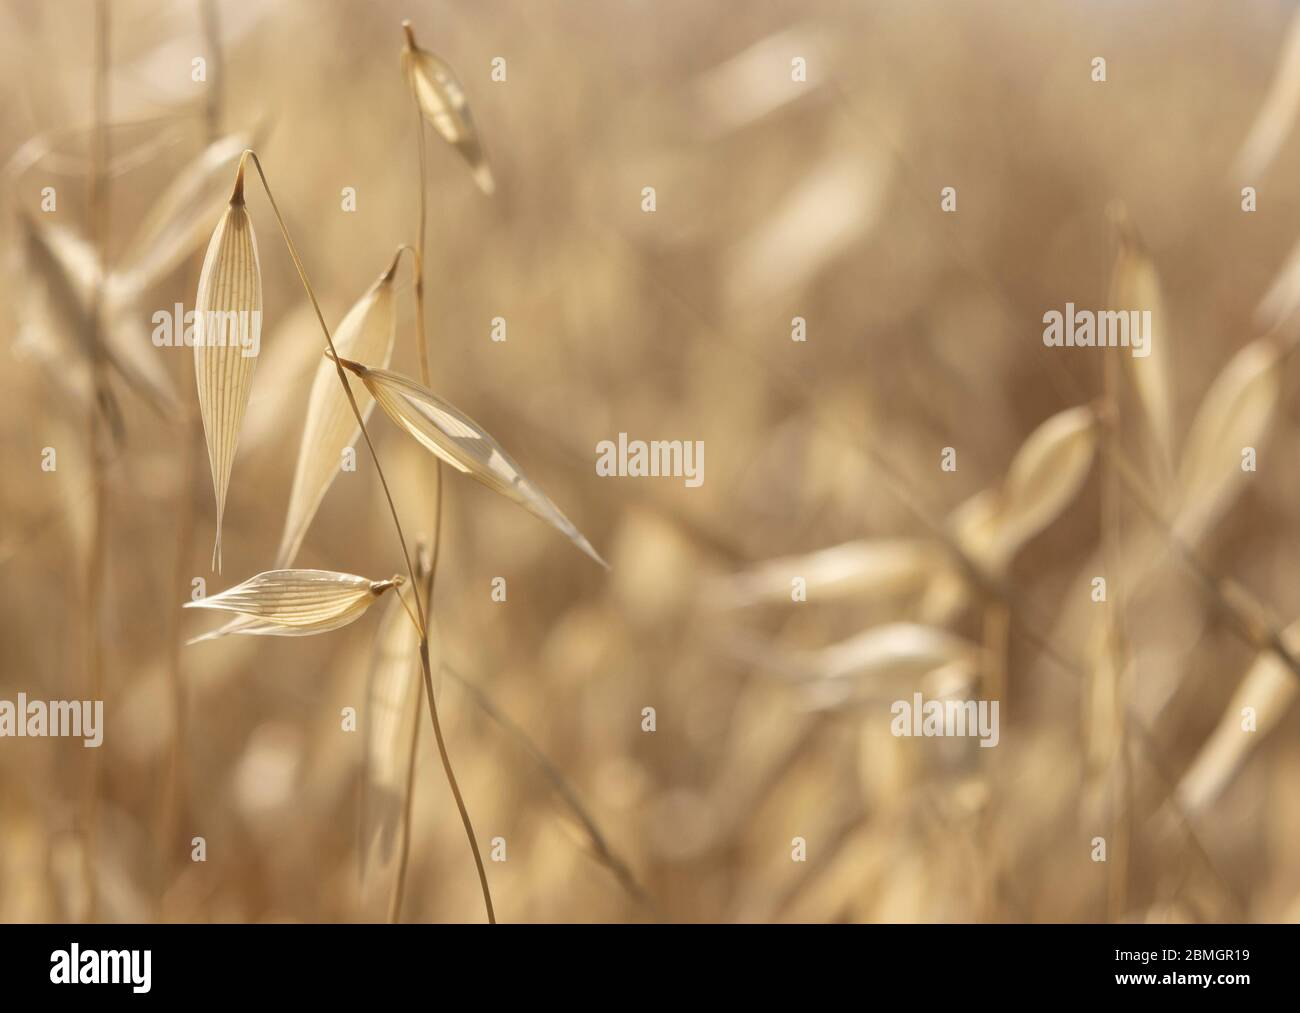 A field of dry oats on a sunny day. A close up photograph with a shallow depth of field and copy space. Stock Photo